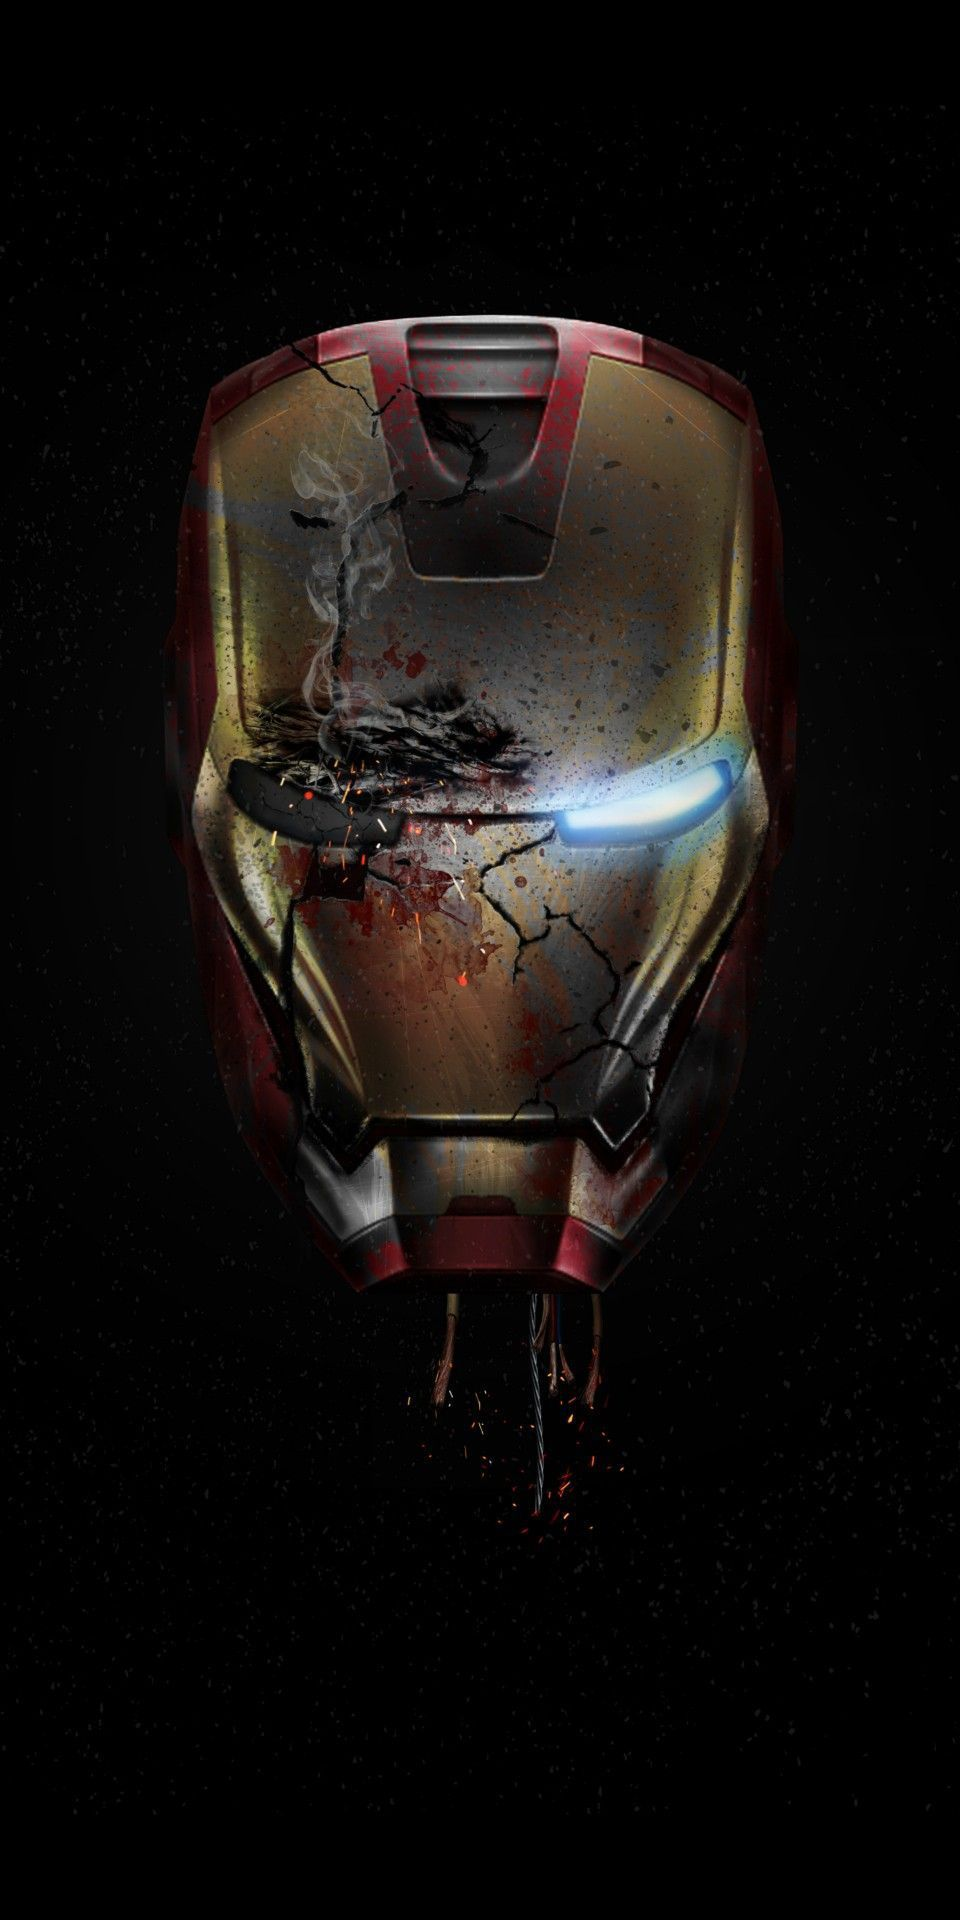 Iron Man Damaged Helmet Endgame Iphone Wallpaper Marvel Iron Man Iron Man Avengers Iron Man